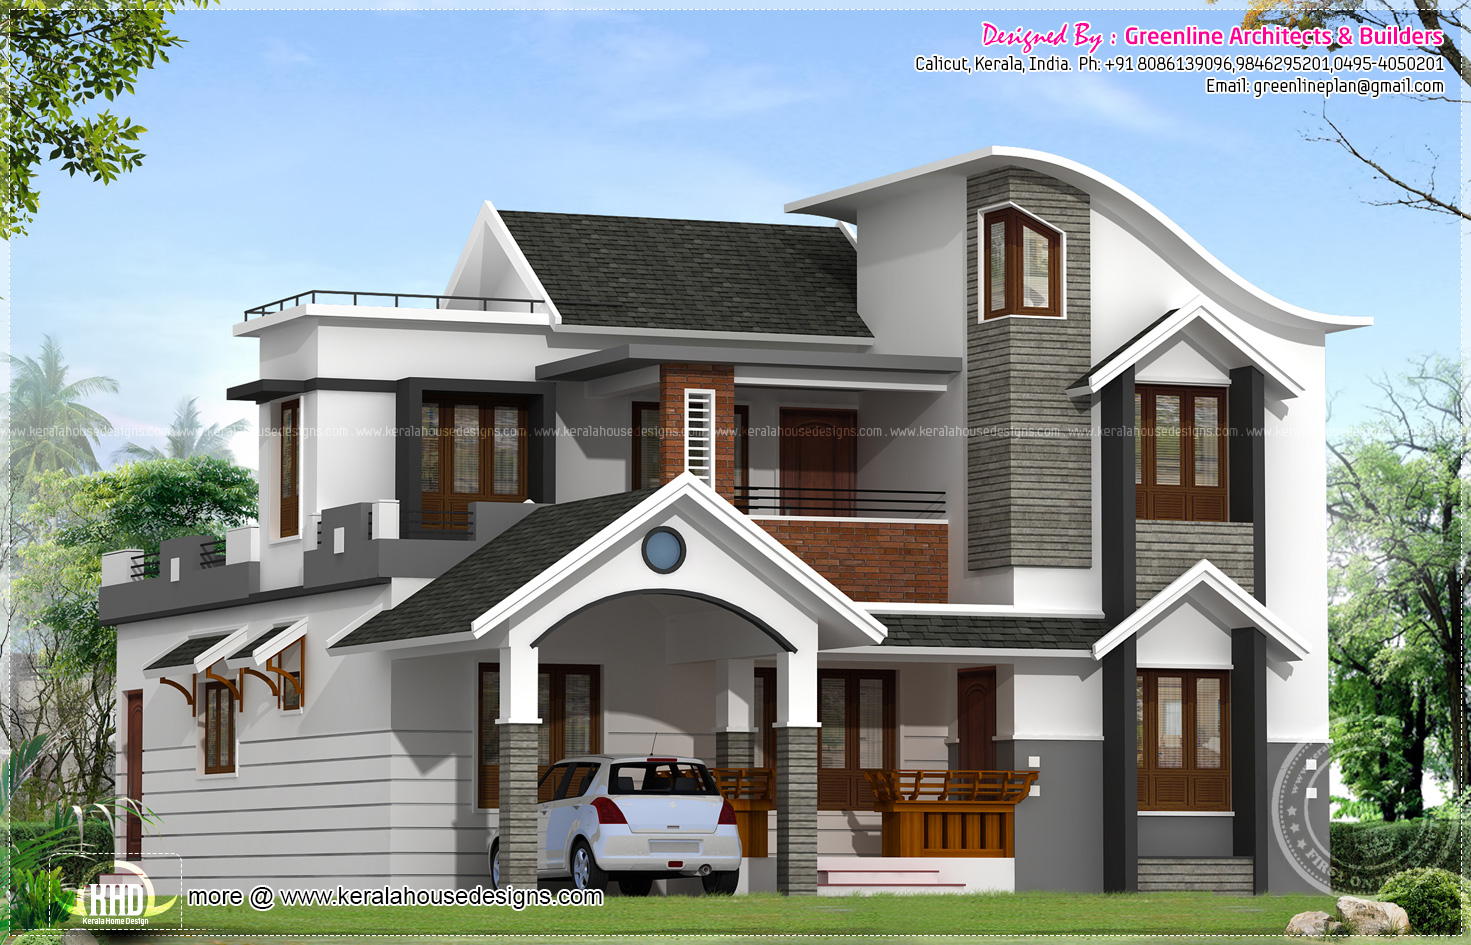 Modern house architecture in kerala kerala home design for Home designs kerala architects